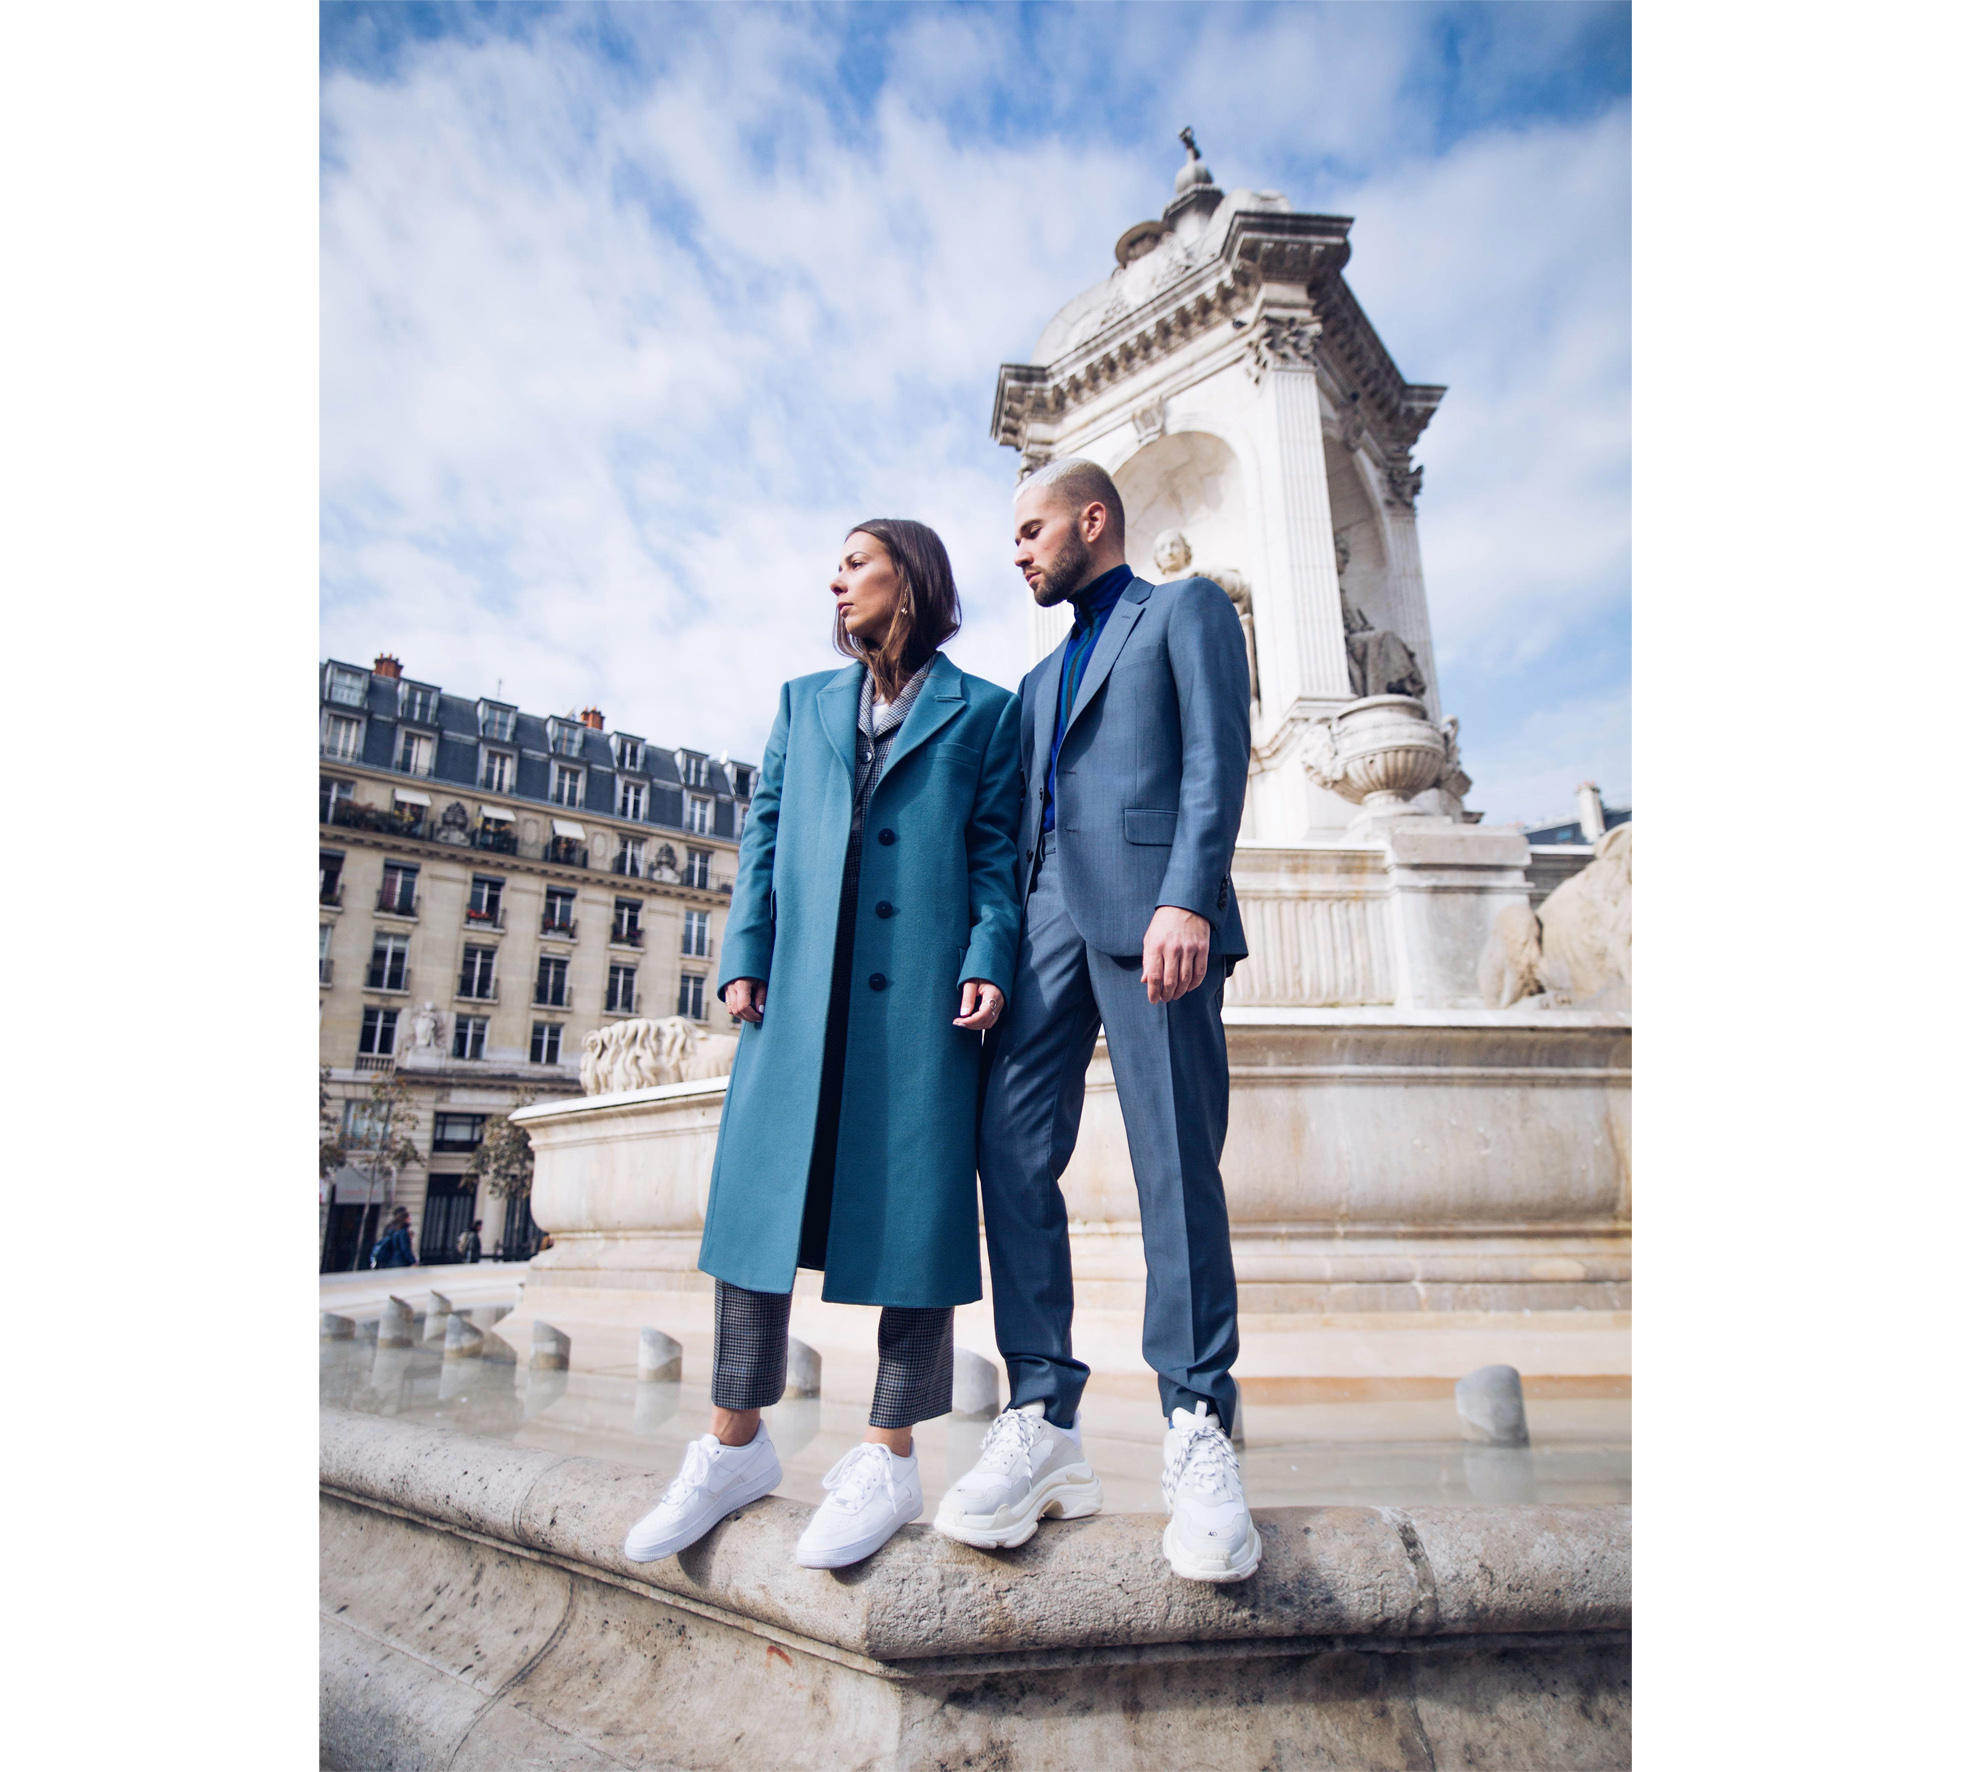 paul smith couple fashion lokk book 2018